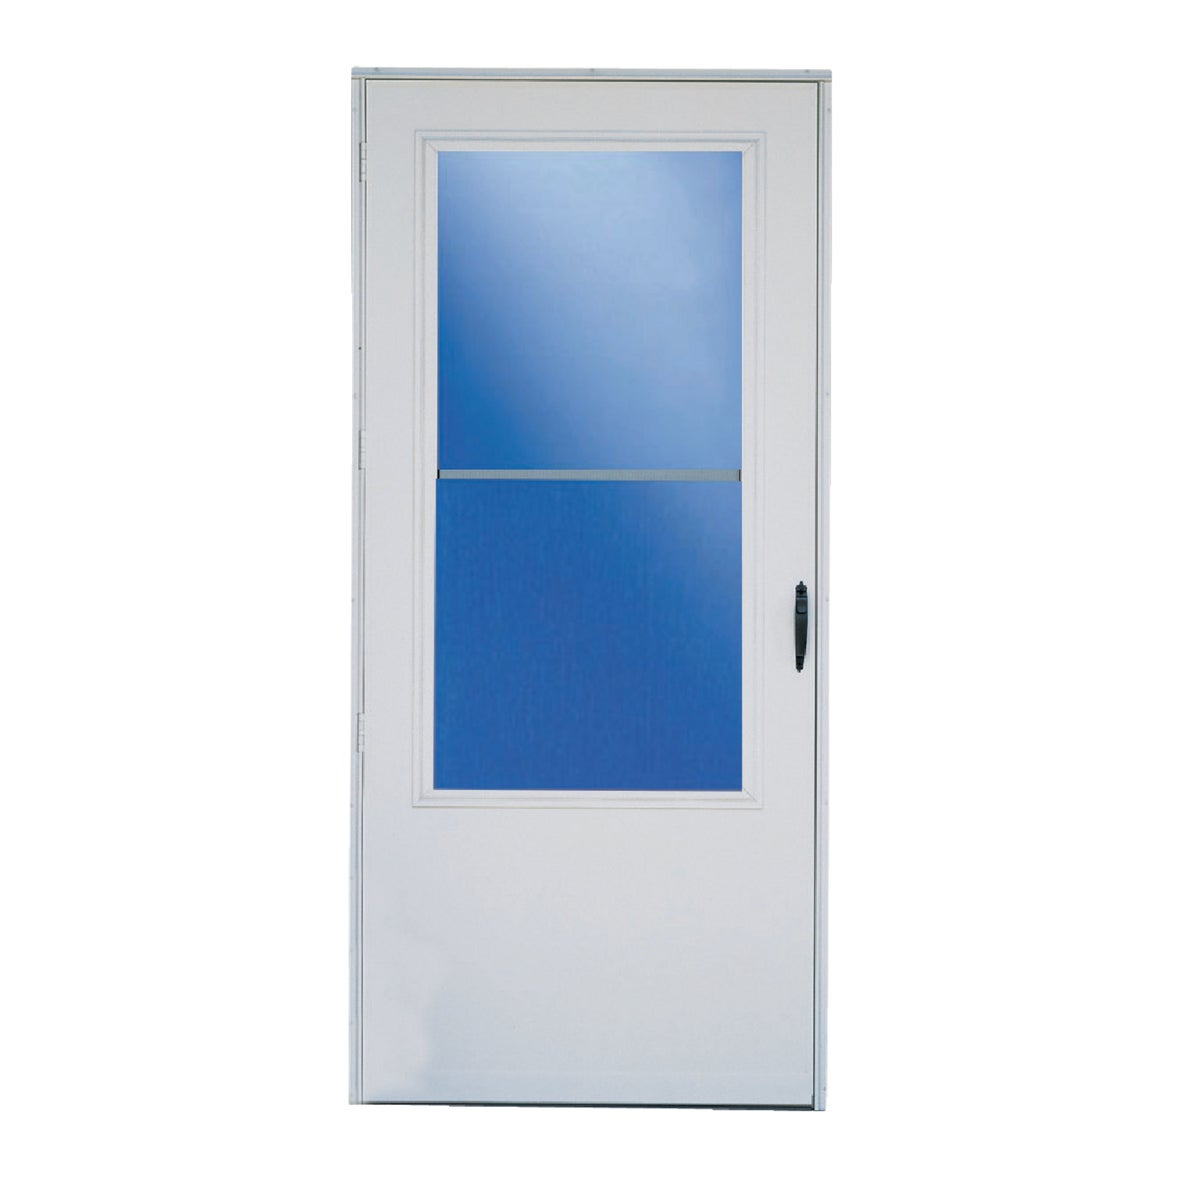 "36"" WHT MULTI-VENT DOOR - 83001 by Larson Mfg Co"